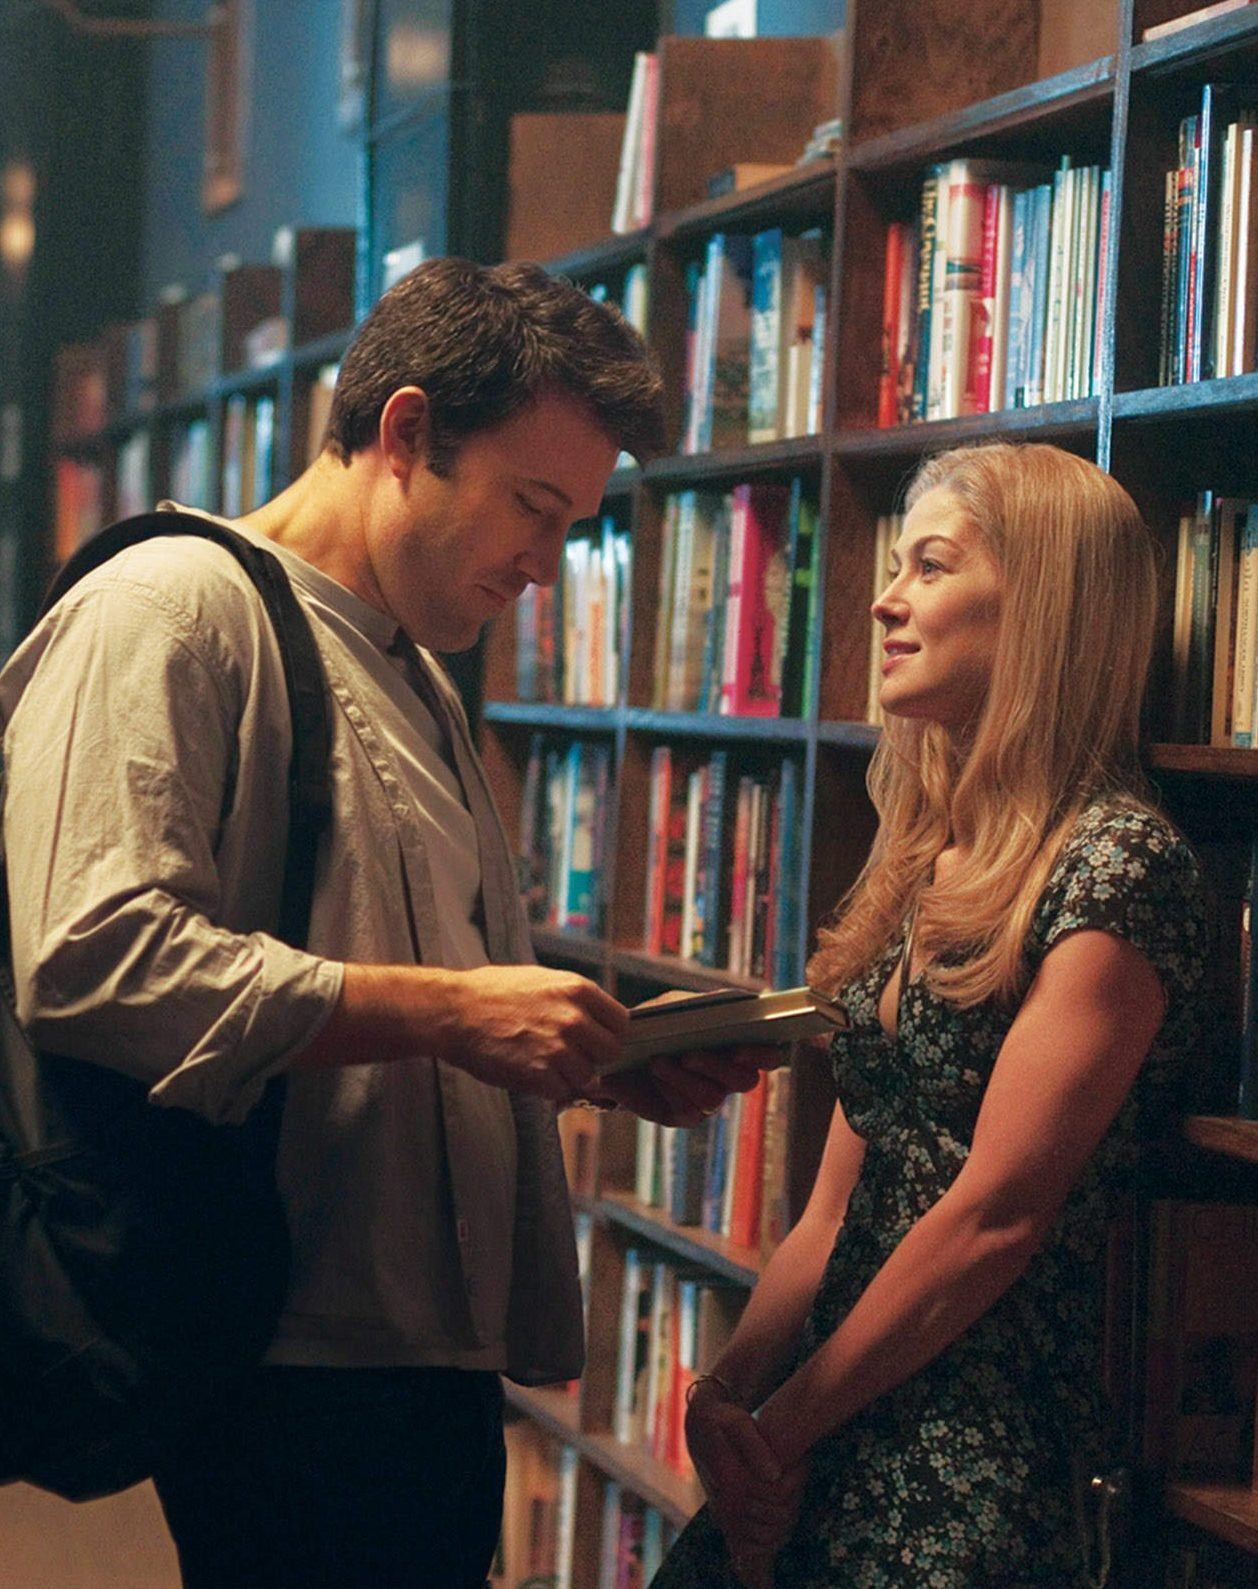 4 27 e1582551464758 20 Of The Best Anti-Valentine's Day Films For All The Cynics Out There